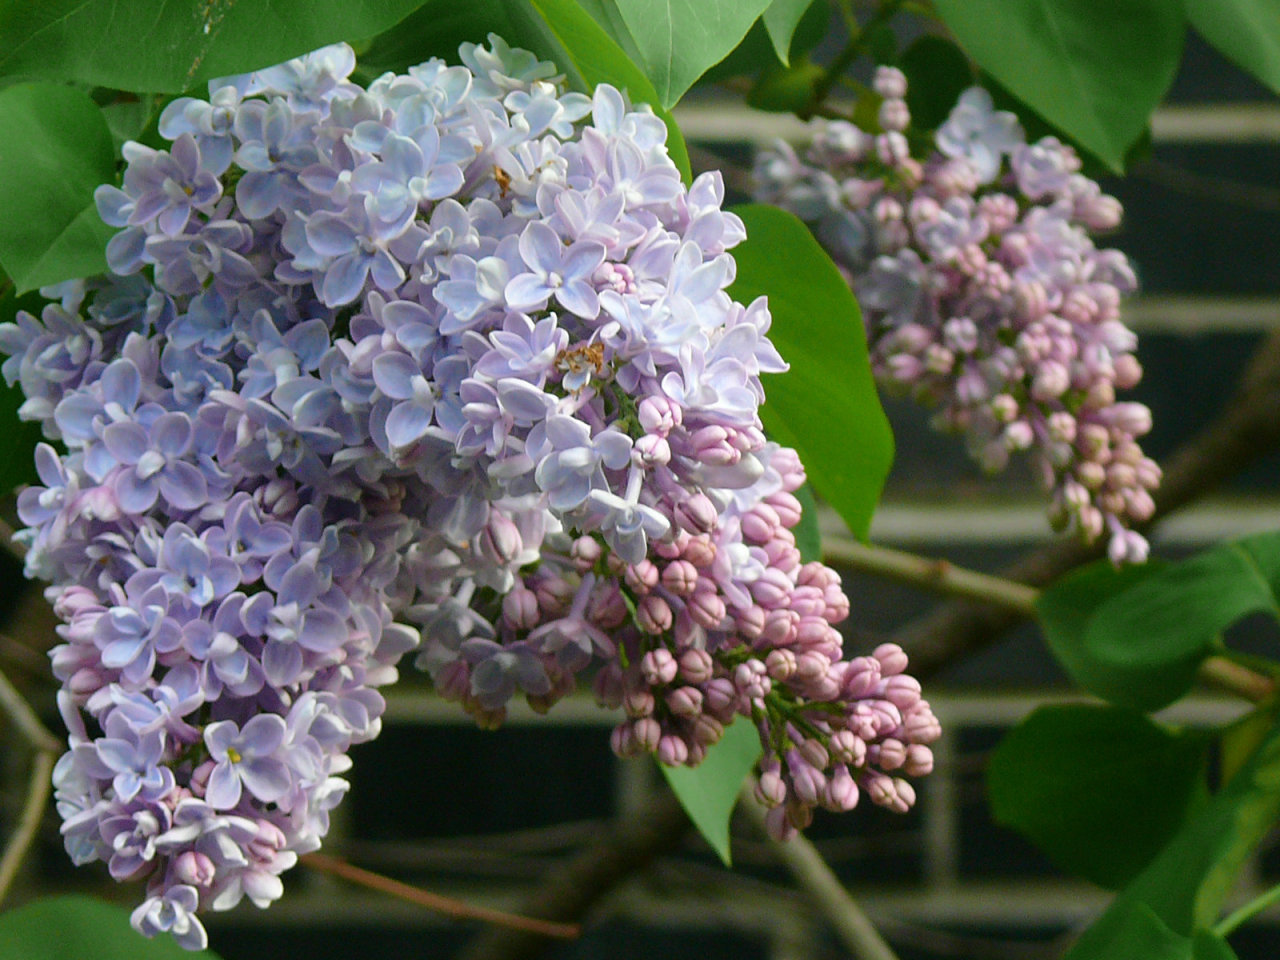 naturesdance:  The lilacs at my place are blossoming. They're perfuming the air so wonderfully that I wish I could capture and share the scent along with the photo :)